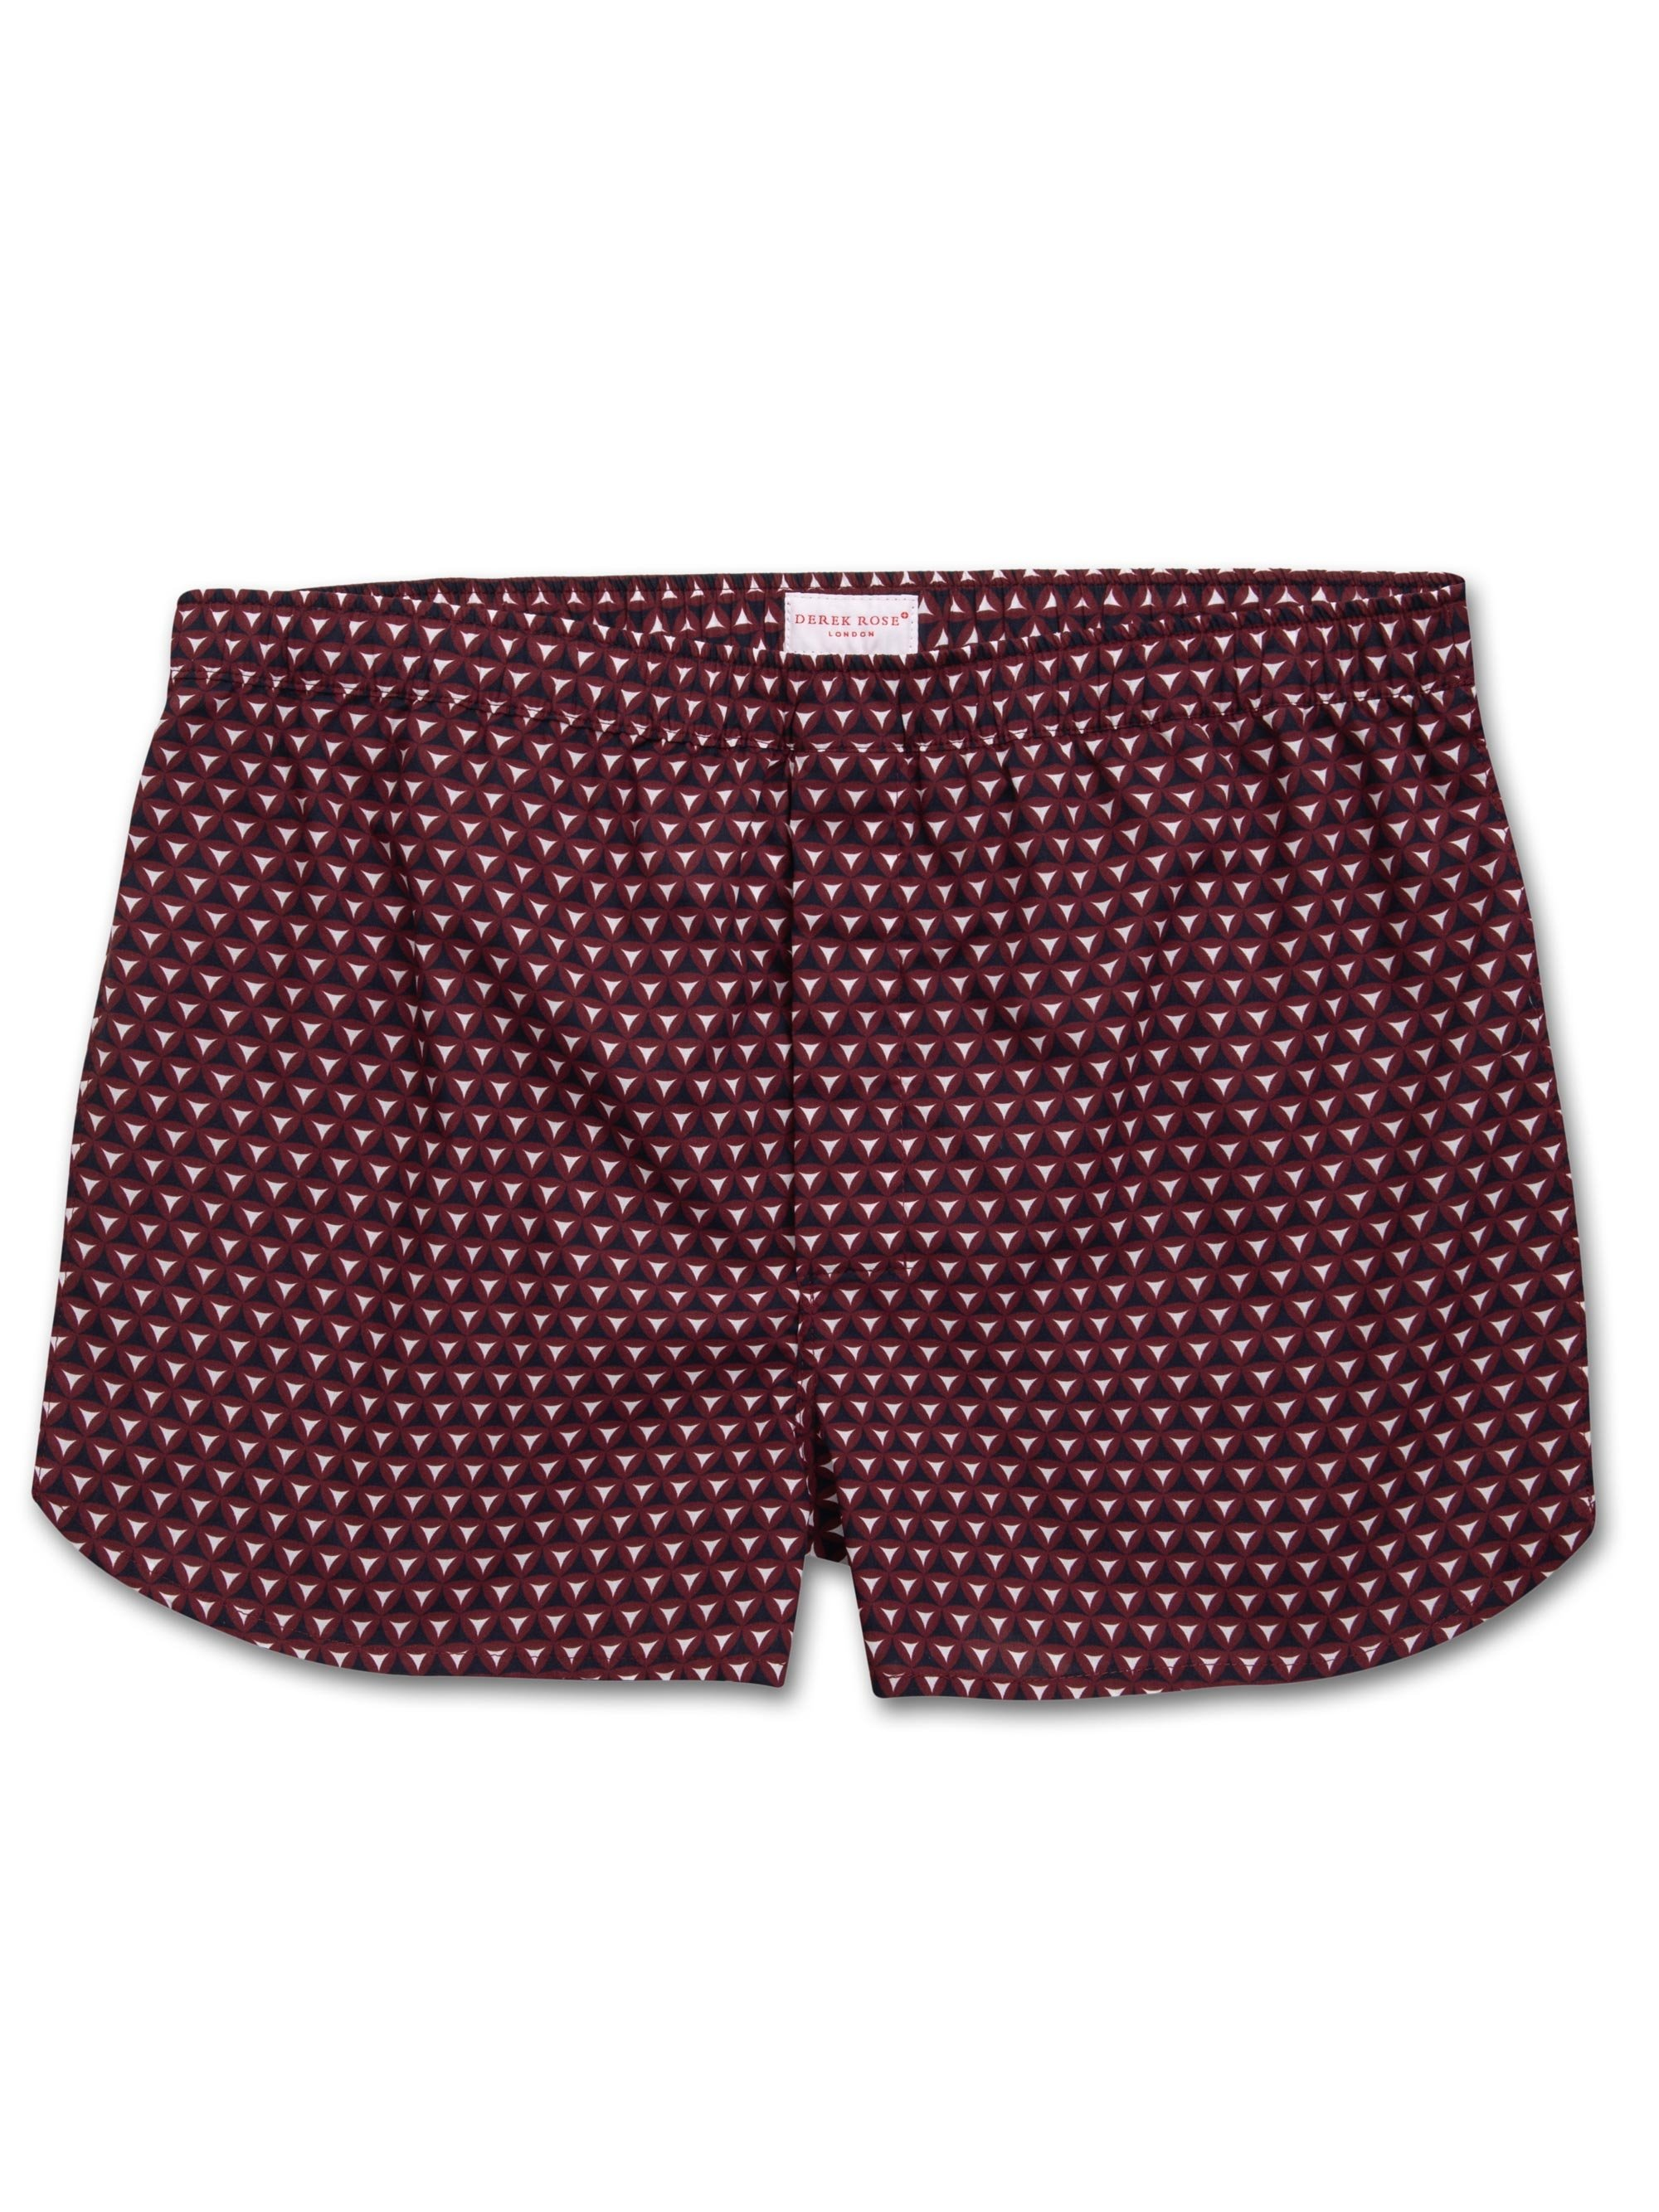 Men's Modern Fit Boxer Shorts Ledbury 26 Cotton Batiste Burgundy